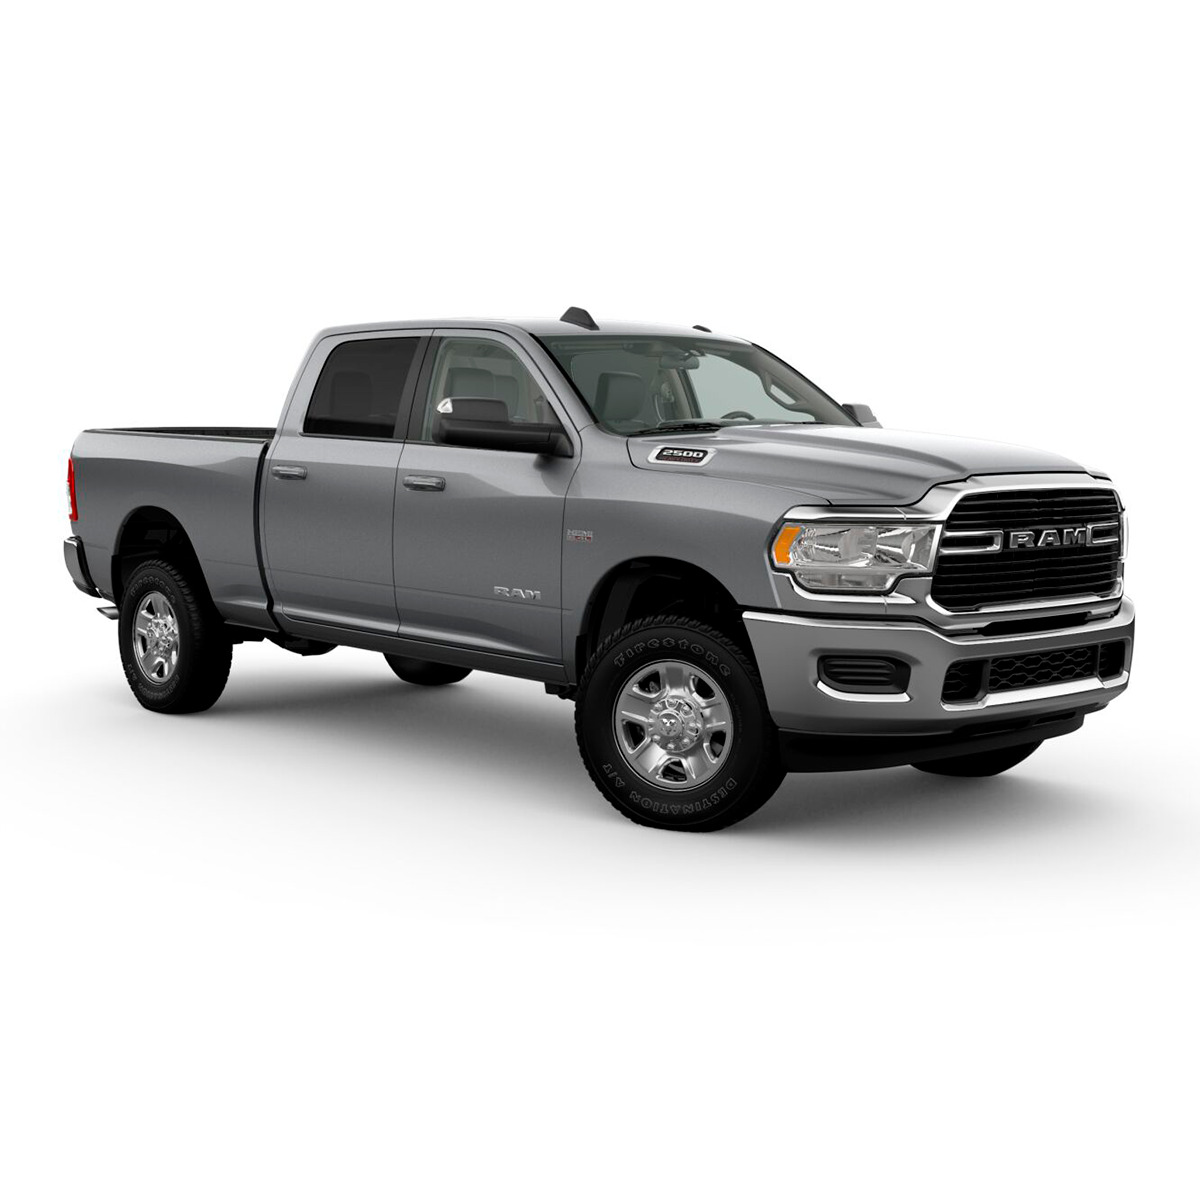 Ram 2500 BIG HORN CREW CAB 4X4 6.7L AT